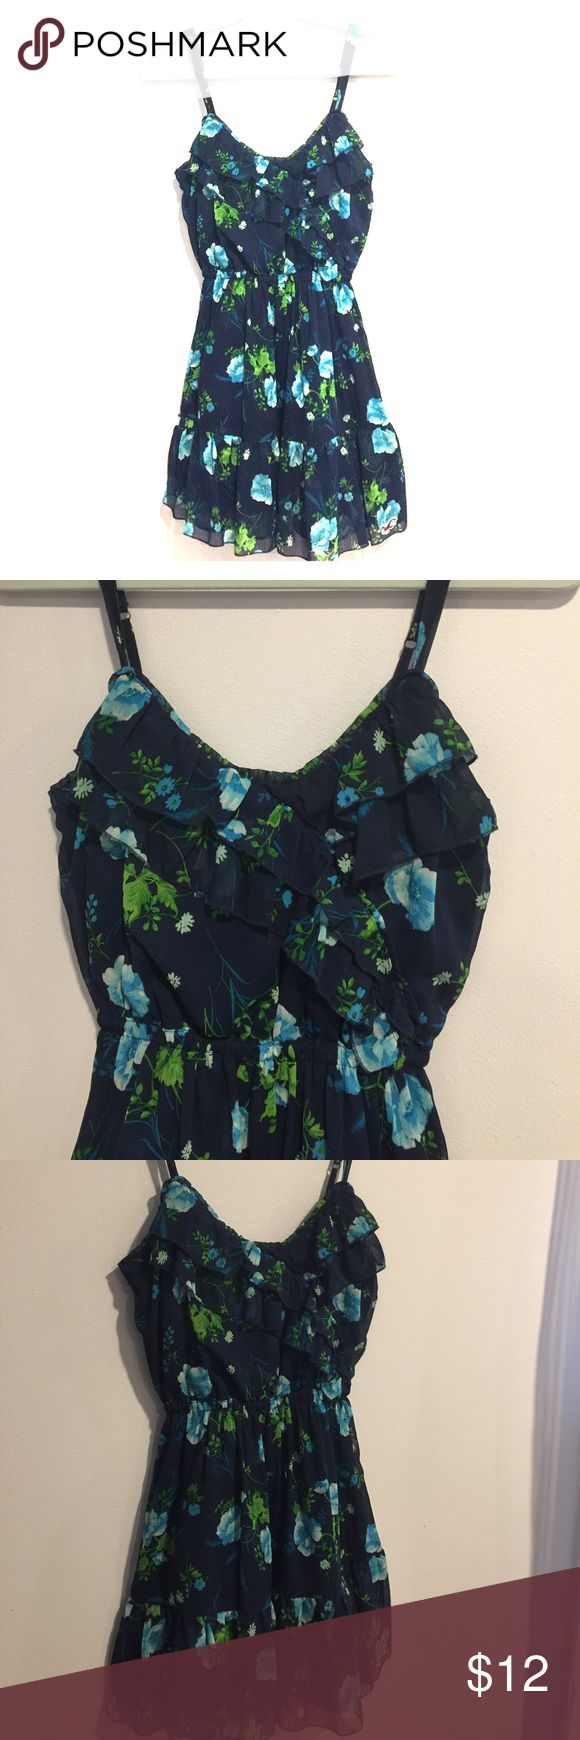 Hollister Navy Blue Floral Dress! Size: S, Hollister Navy Blue Floral Dress! Size: S, Adorable Summer Dress! Super Comfy , Elastic Waist for added comfort! Pair it with flats or heels! Any Questions please Comment! Hollister Dresses Mini